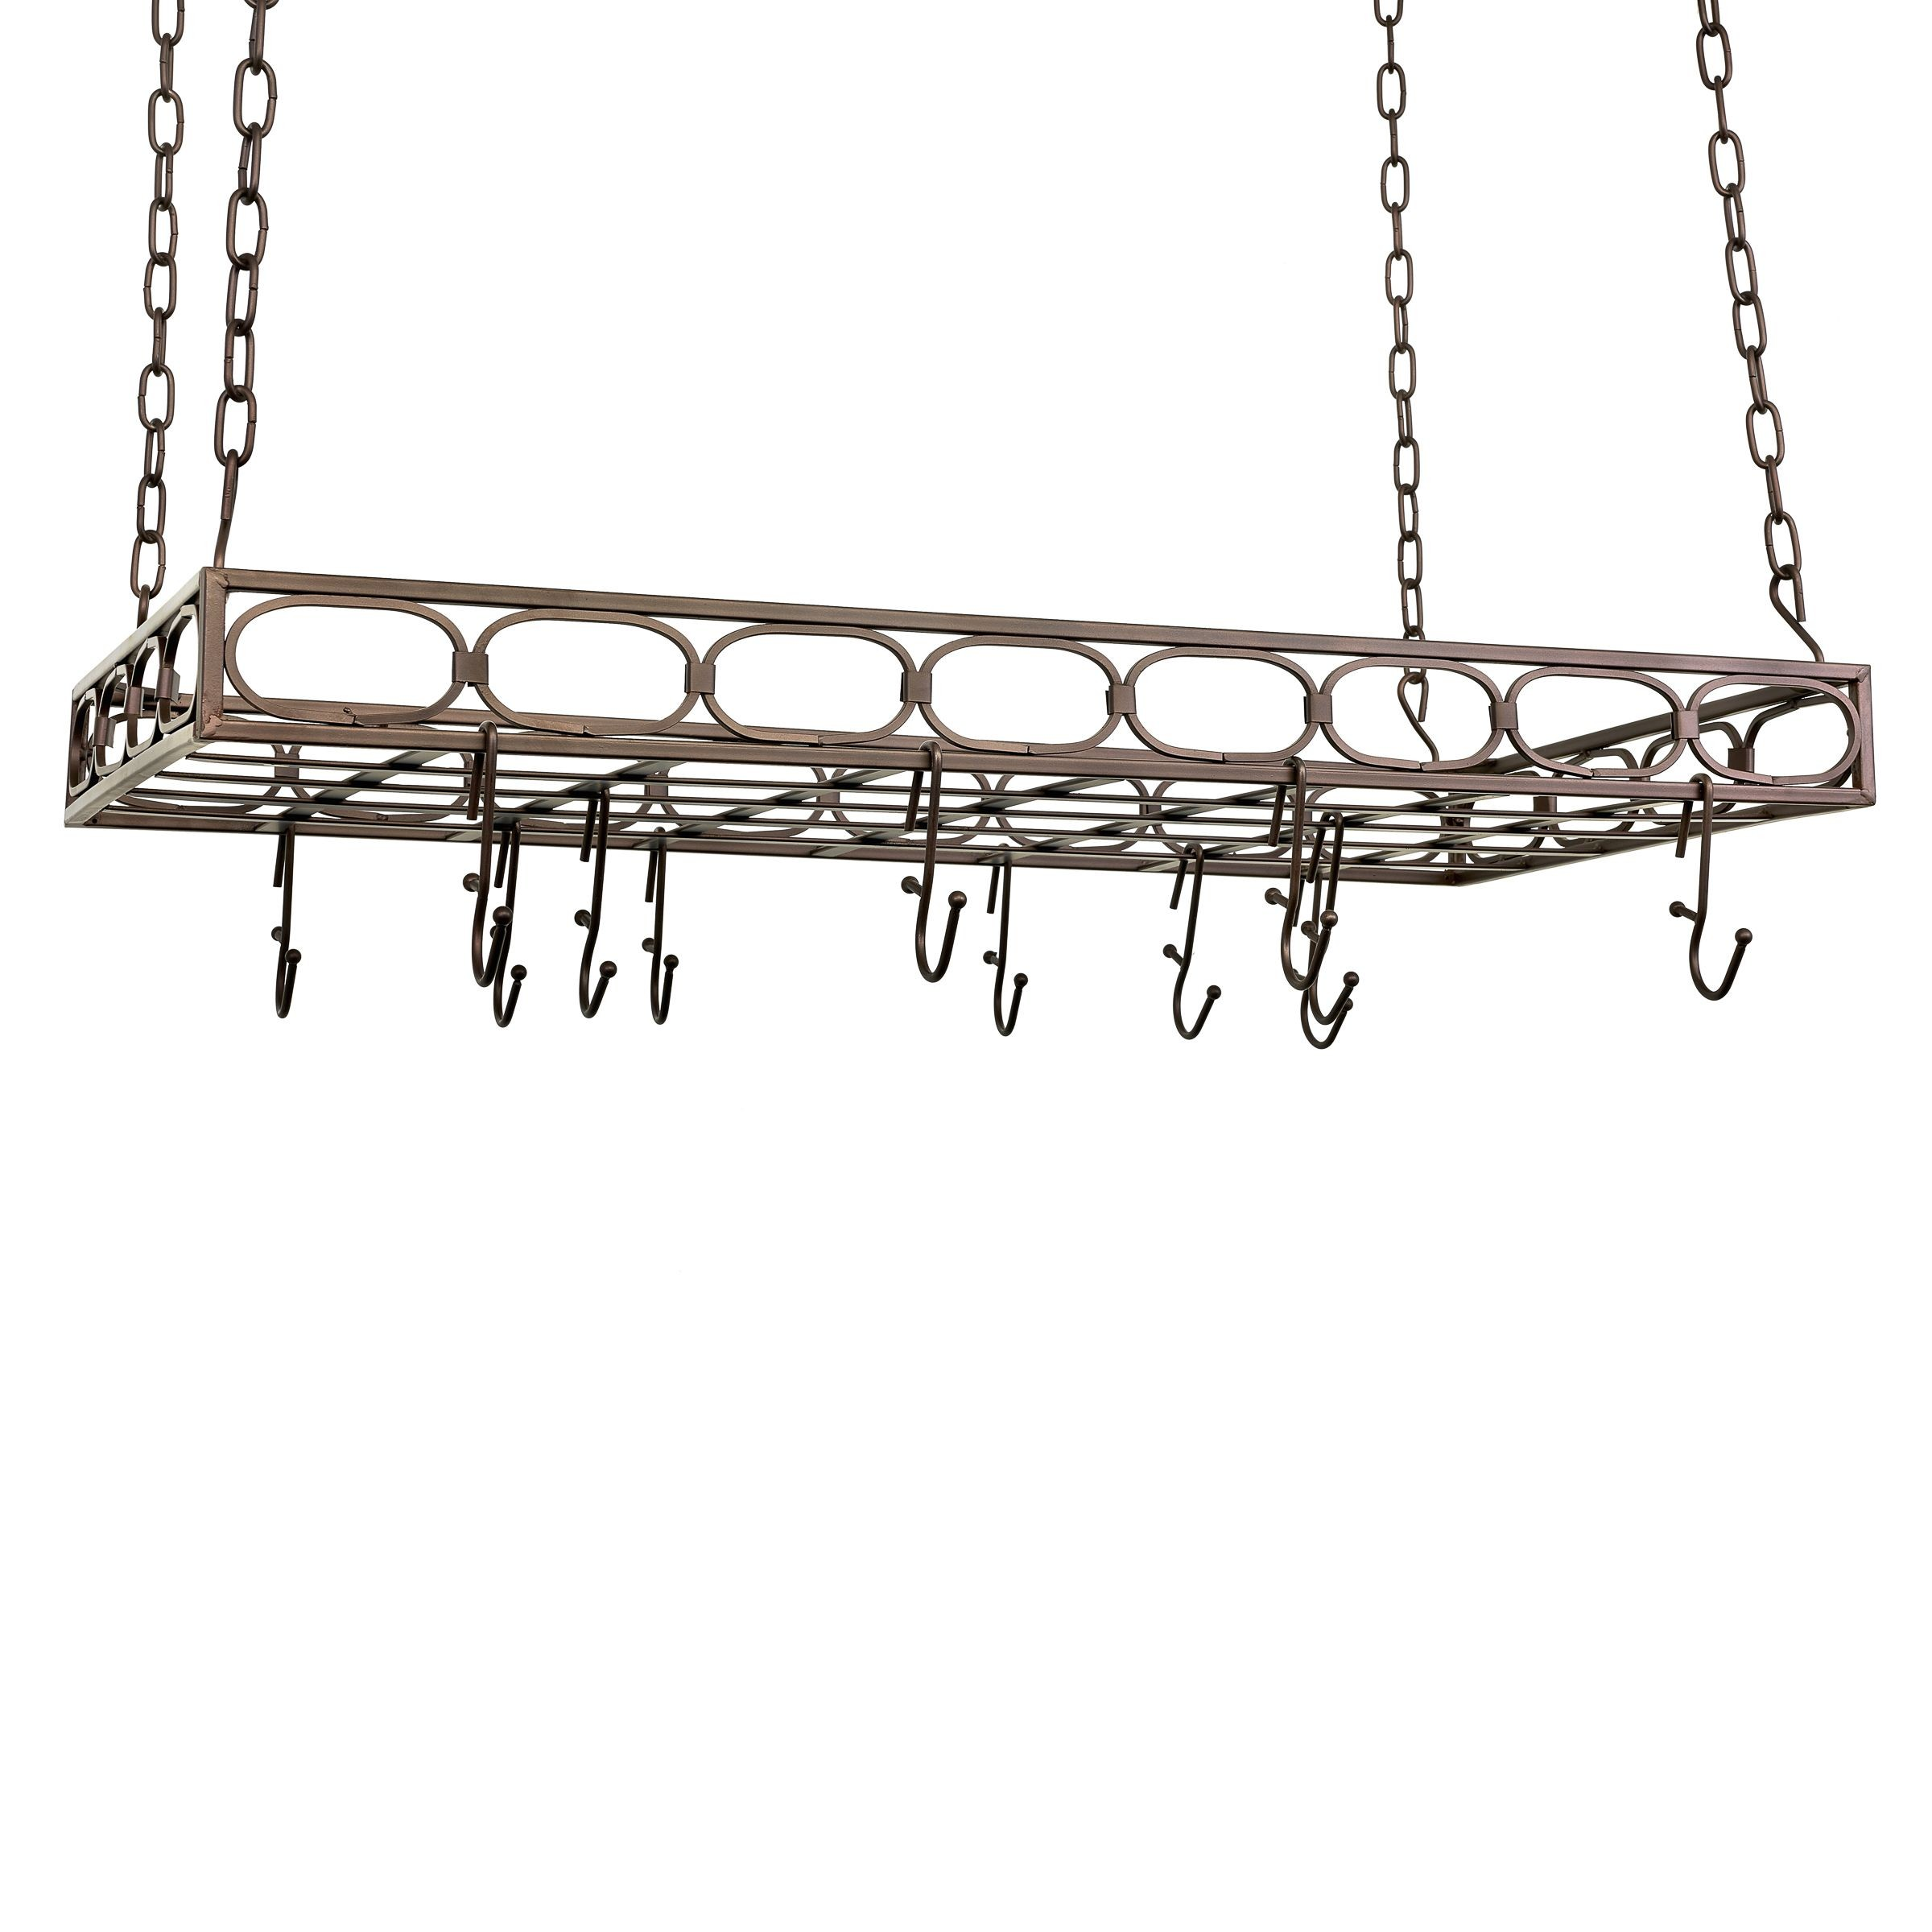 "Old Dutch International 105BZ Rectangular Pot Rack with 16 Hooks, Oiled Bronze, 36"" x 17 3/4"" x 3 3/4"""